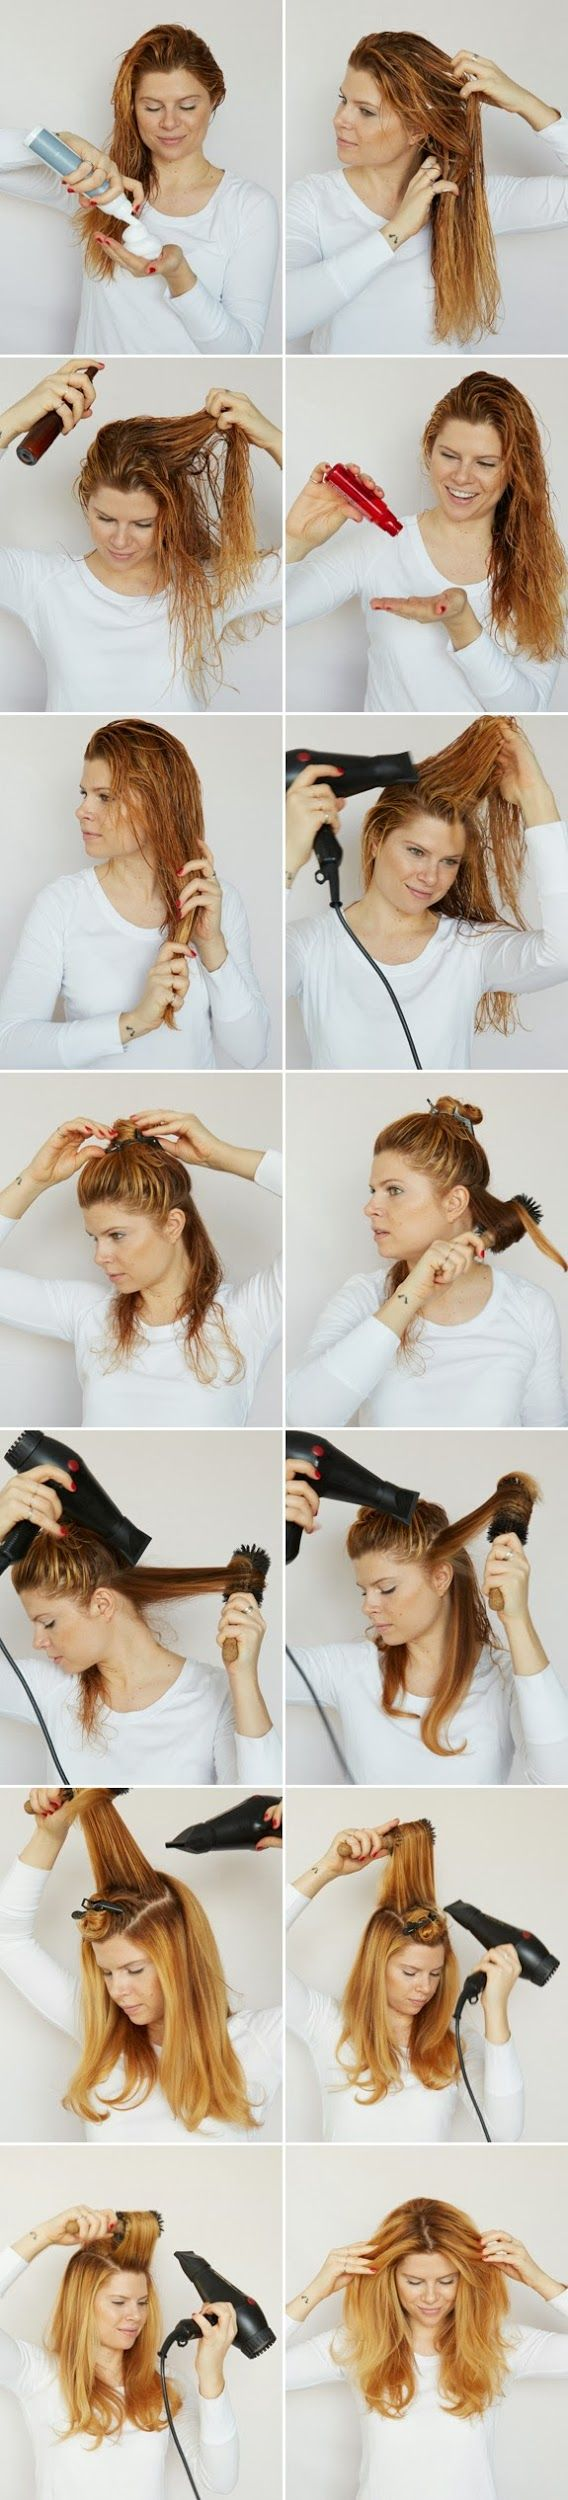 How To Blow Dry Your Hair Like A Hair Stylist A Cup Of Jo Hair Beauty Blow Dry Hair Hair Styles